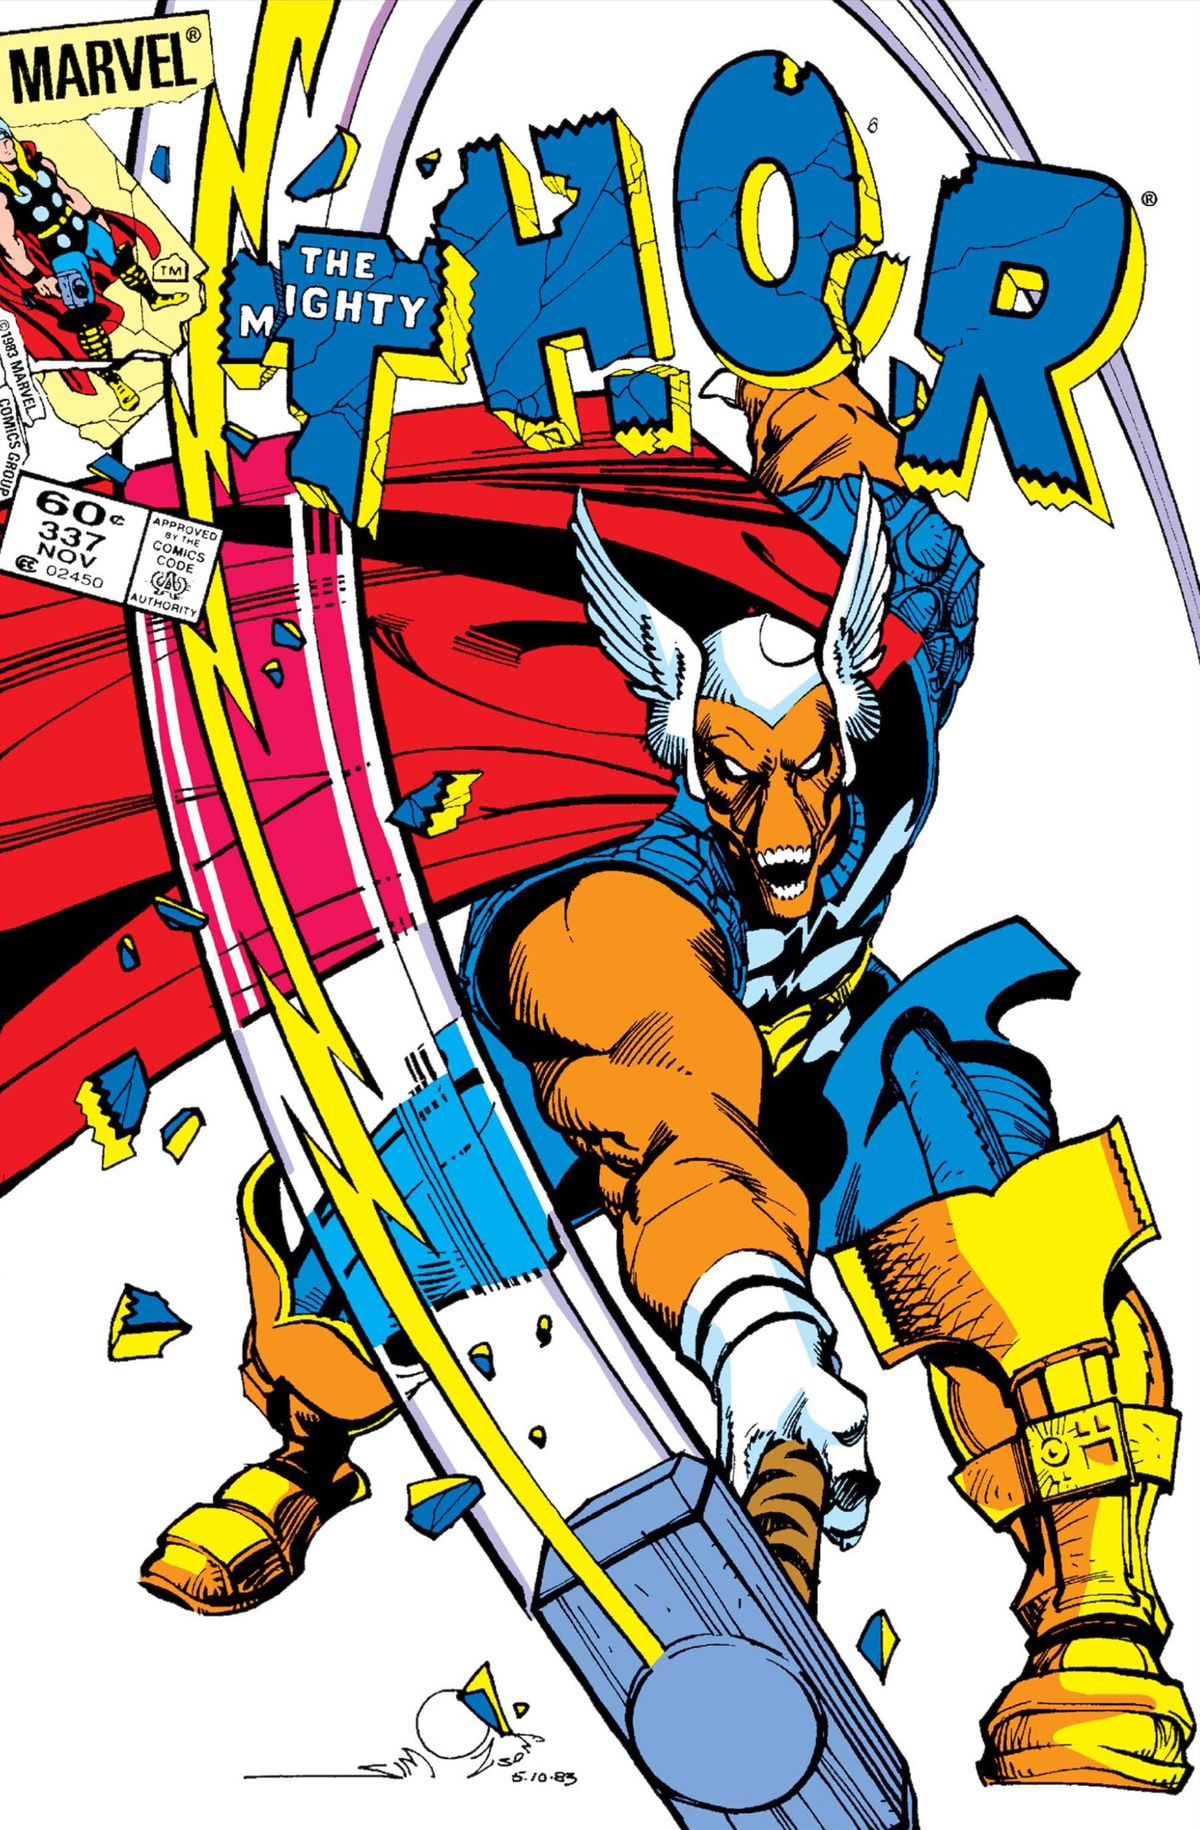 Beta-Ray Bill on the cover of Thor #337, Marvel Comics (1983).